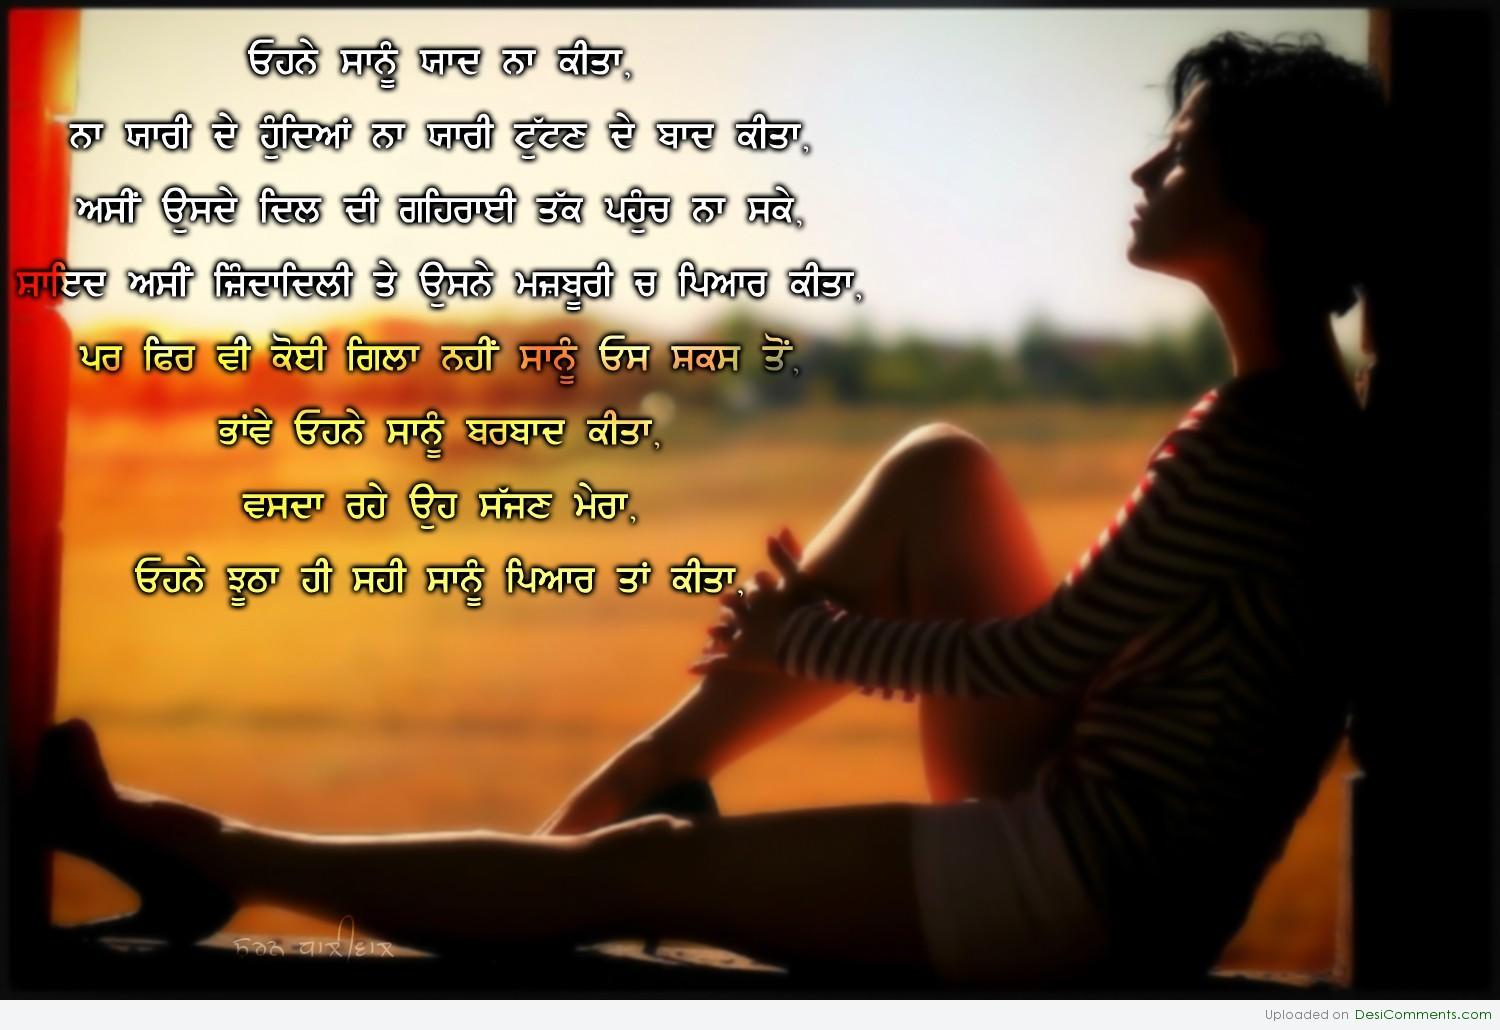 Download Wallpapers Of Good Quotes Jhootha Pyar Desicomments Com